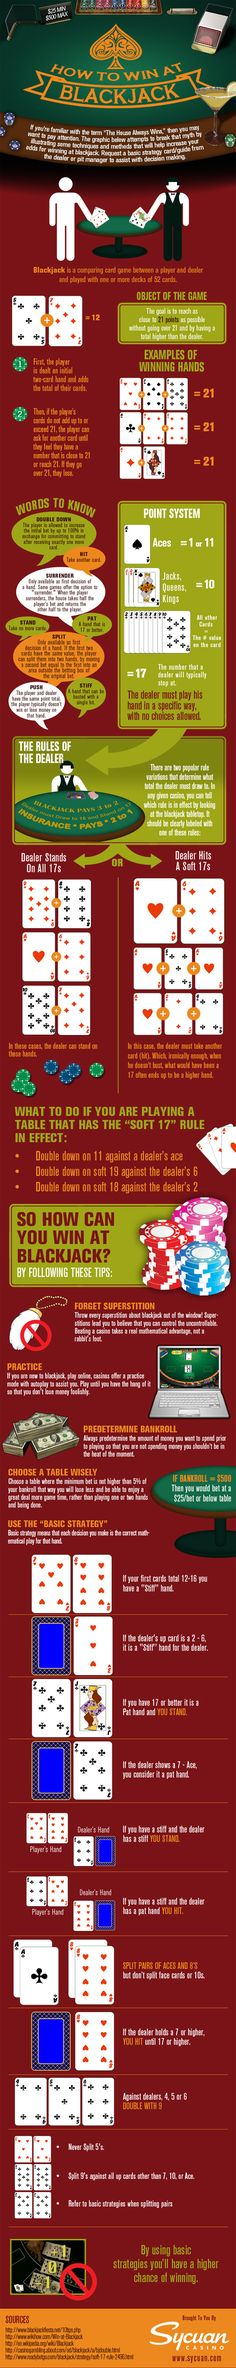 Fun #blackjack image! Read more about this #casino game at www.mkcasino.com